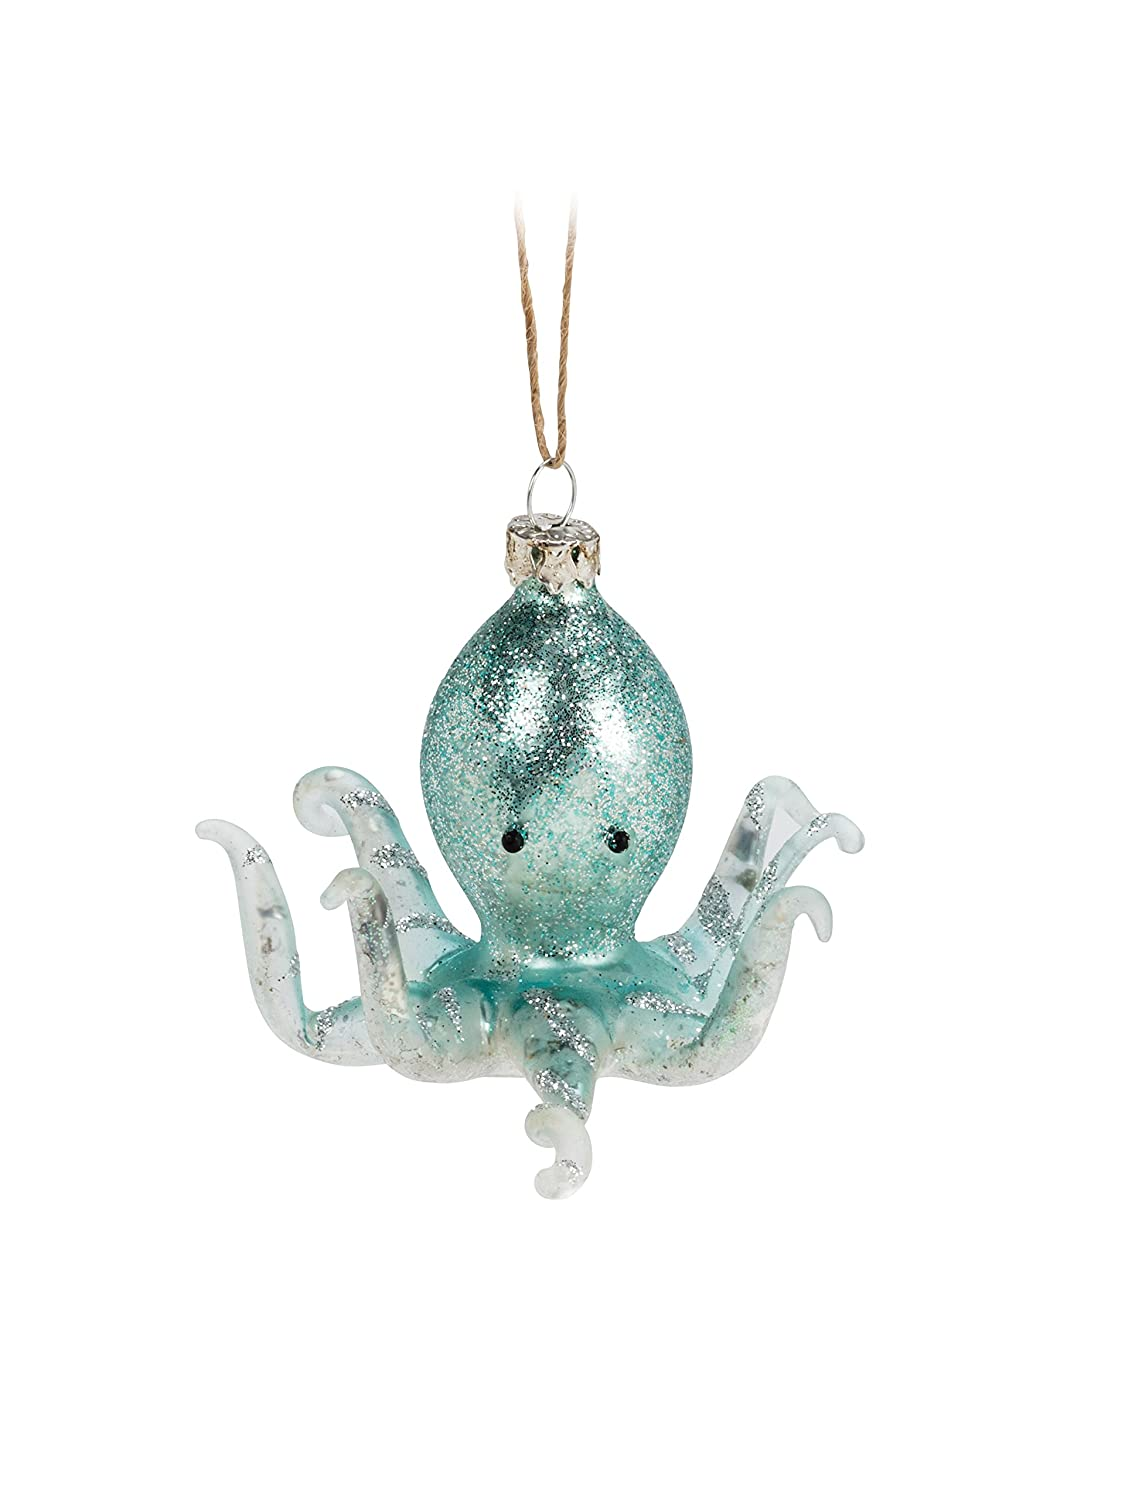 Abbott Collection 27-CLASSIC//0422 Turquoise Octopus Ornament-3.5 W